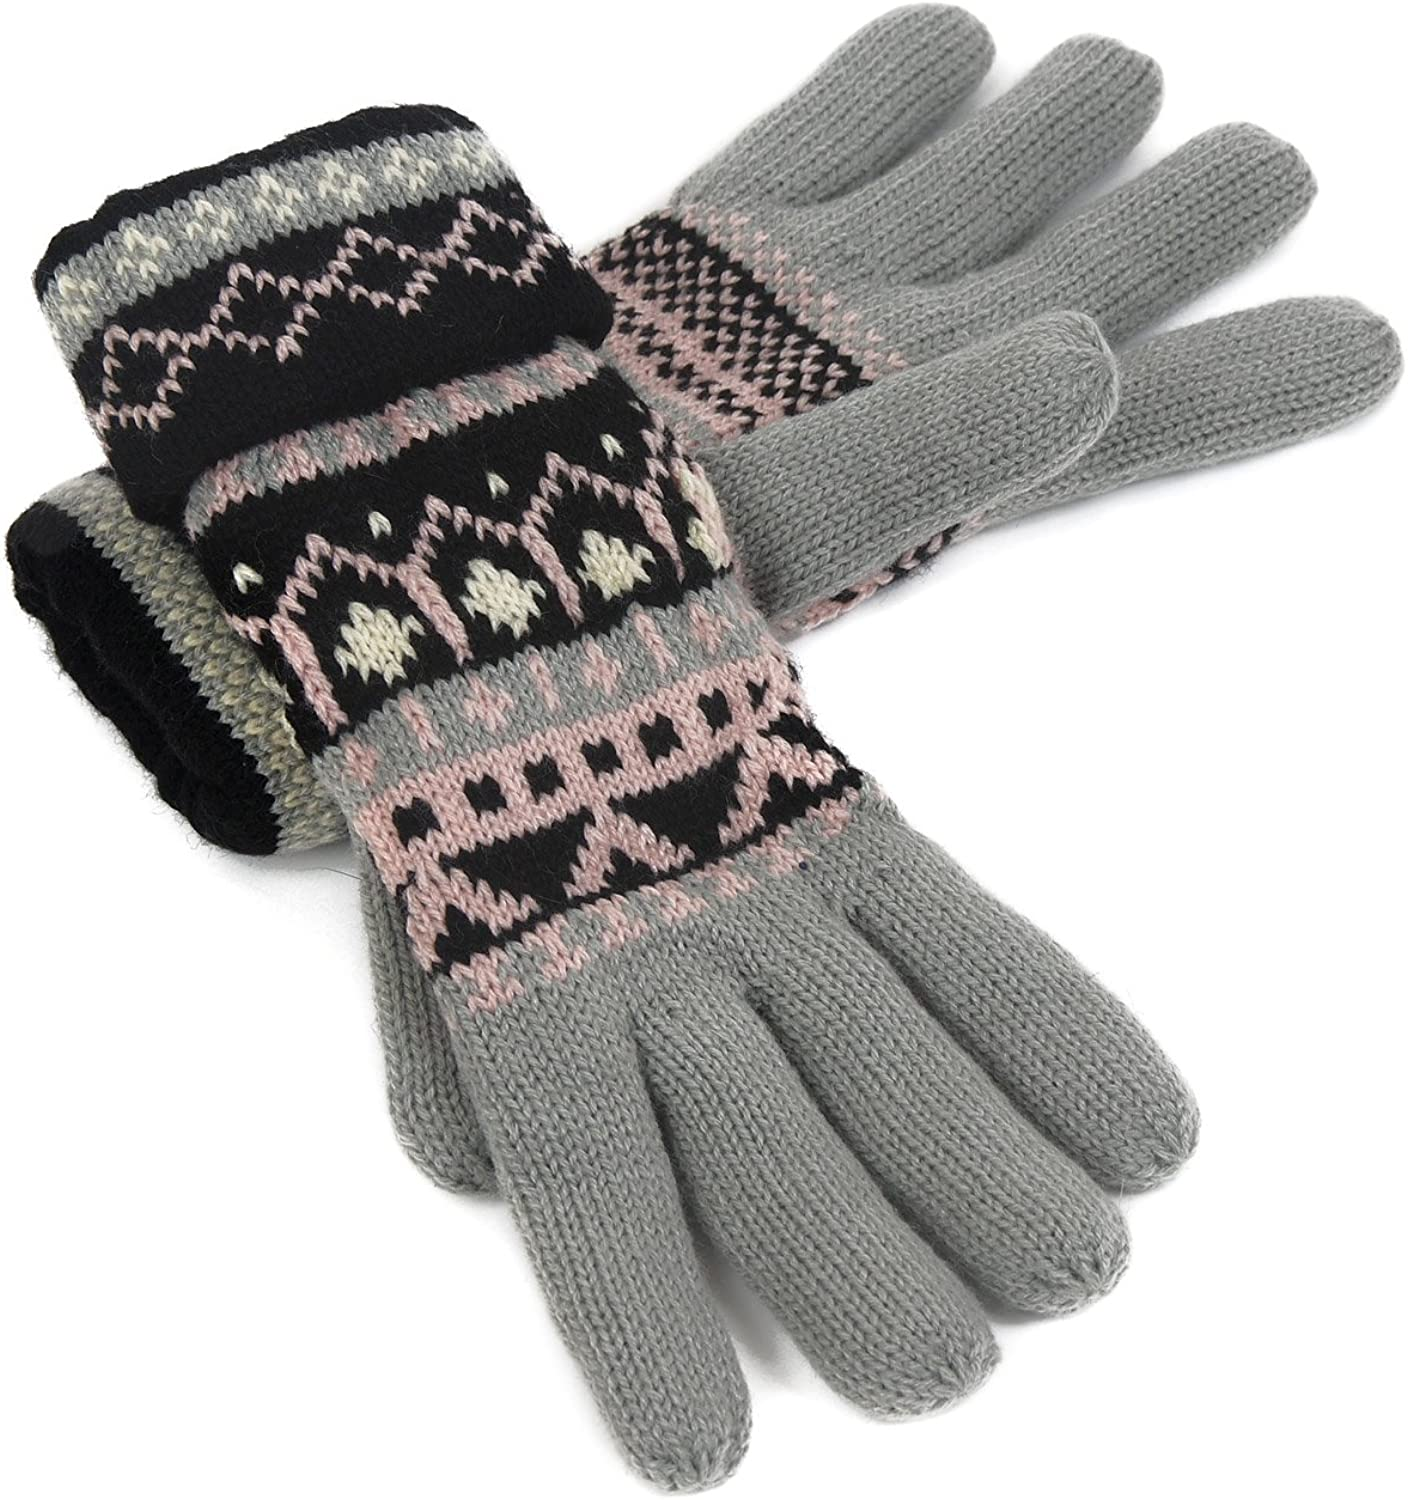 Cozy Women's Knitted Gloves...